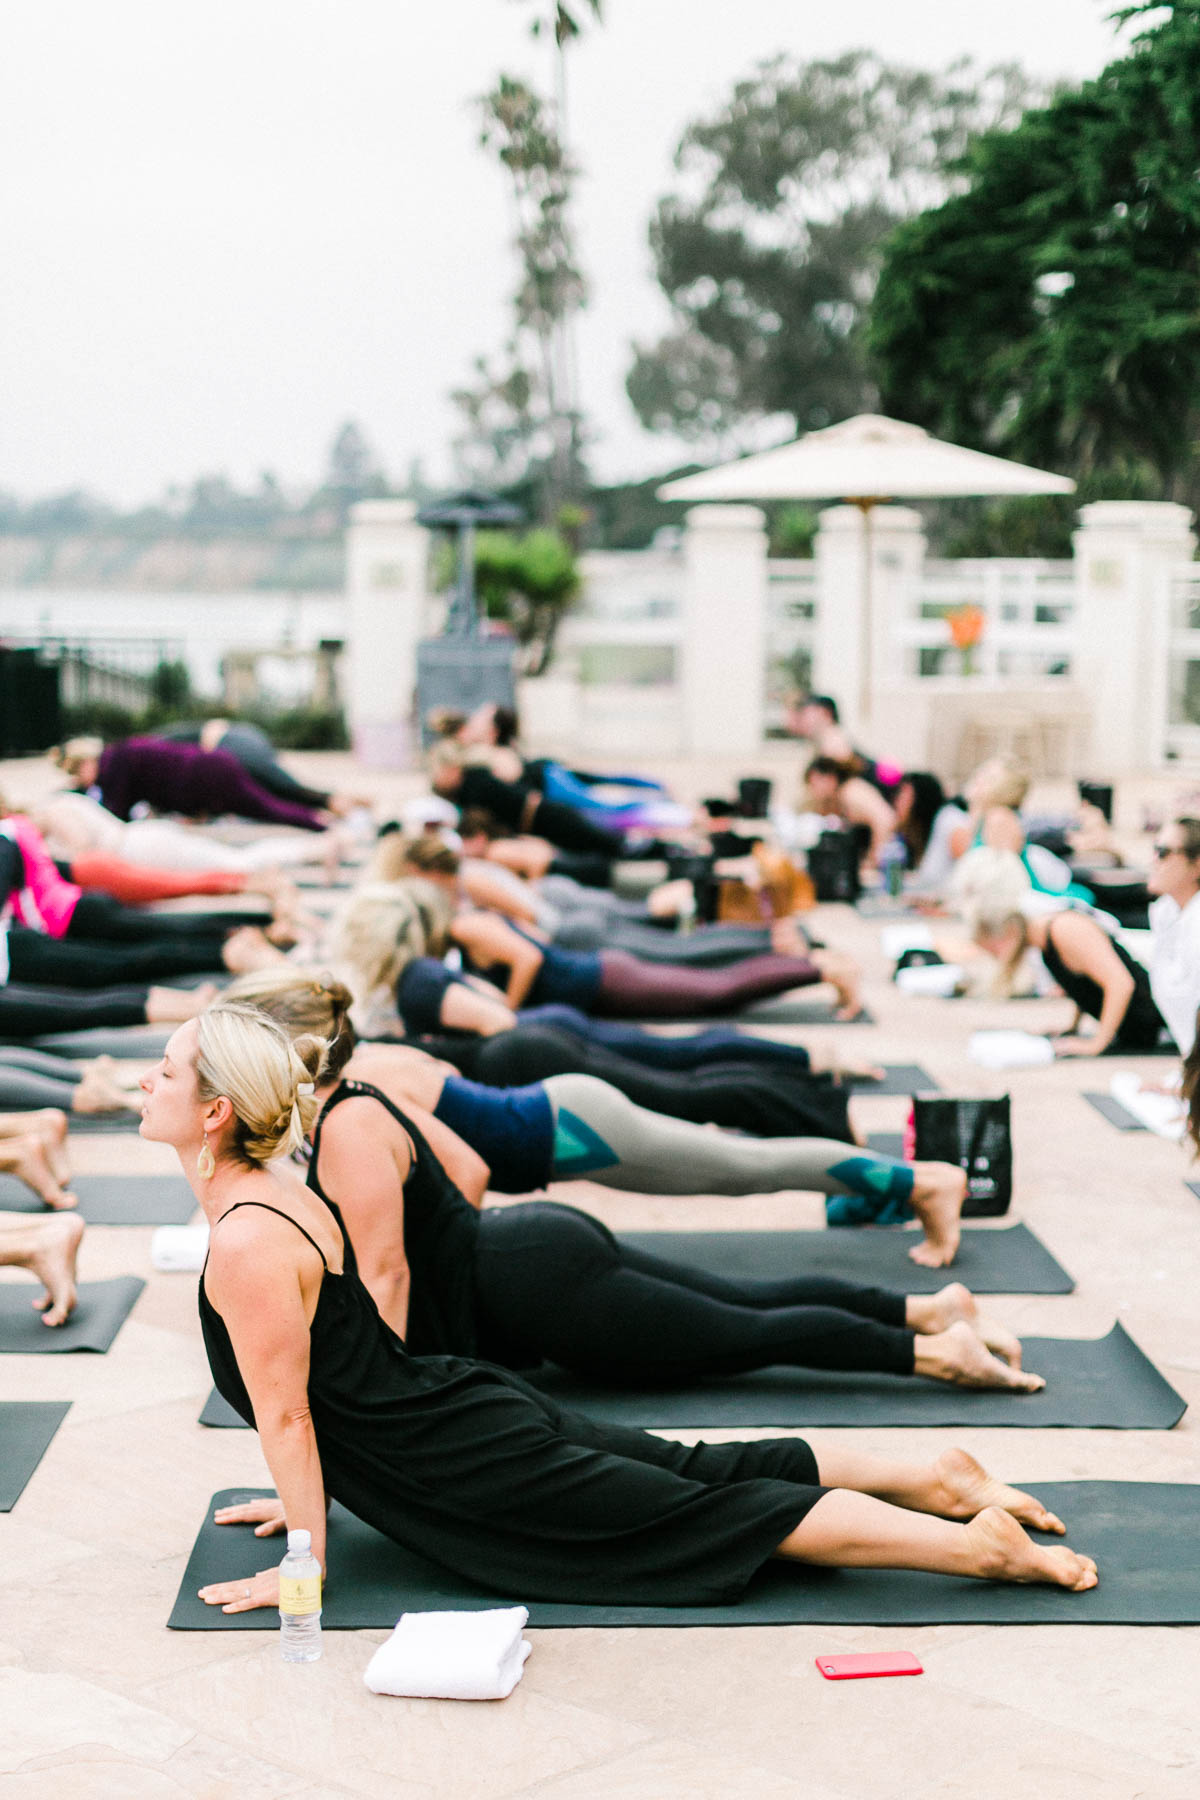 Rhianna Mercier Photography Sattva Soul Retreats LuLulemon Four Seasons Biltmore 2018-21421.jpg